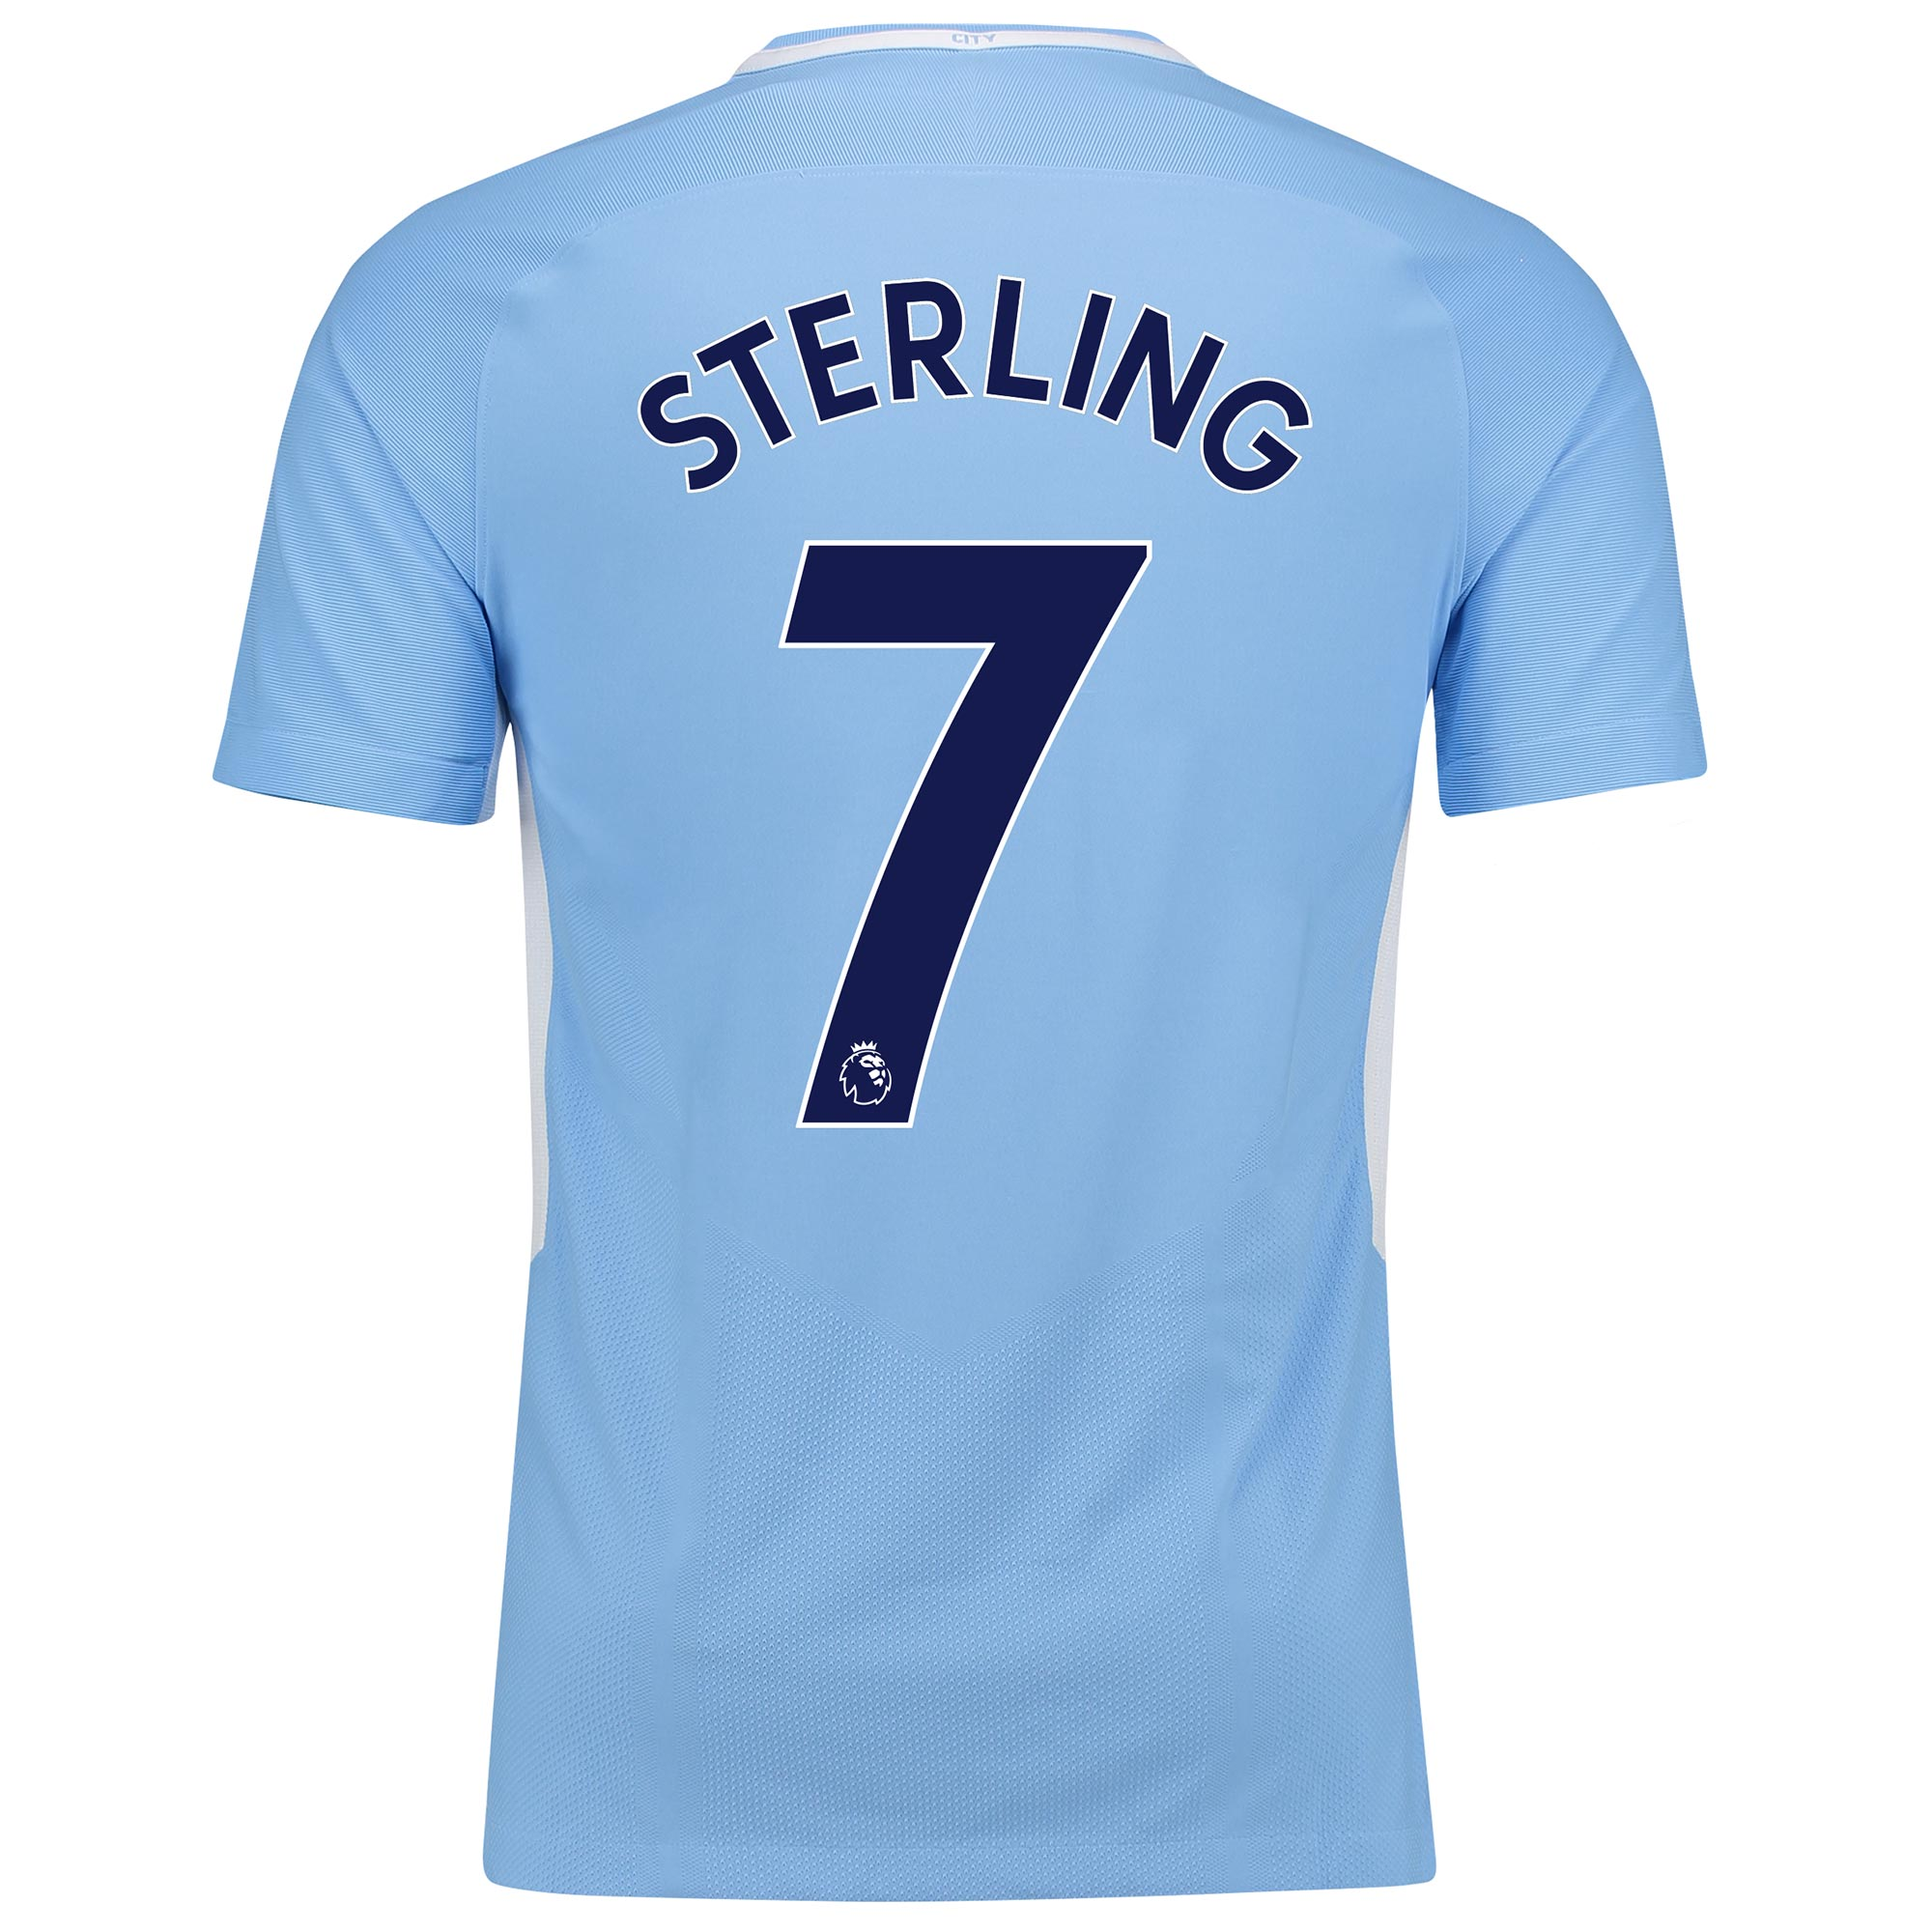 Manchester City Home Vapor Match Shirt 2017-18 with Sterling 7 printin